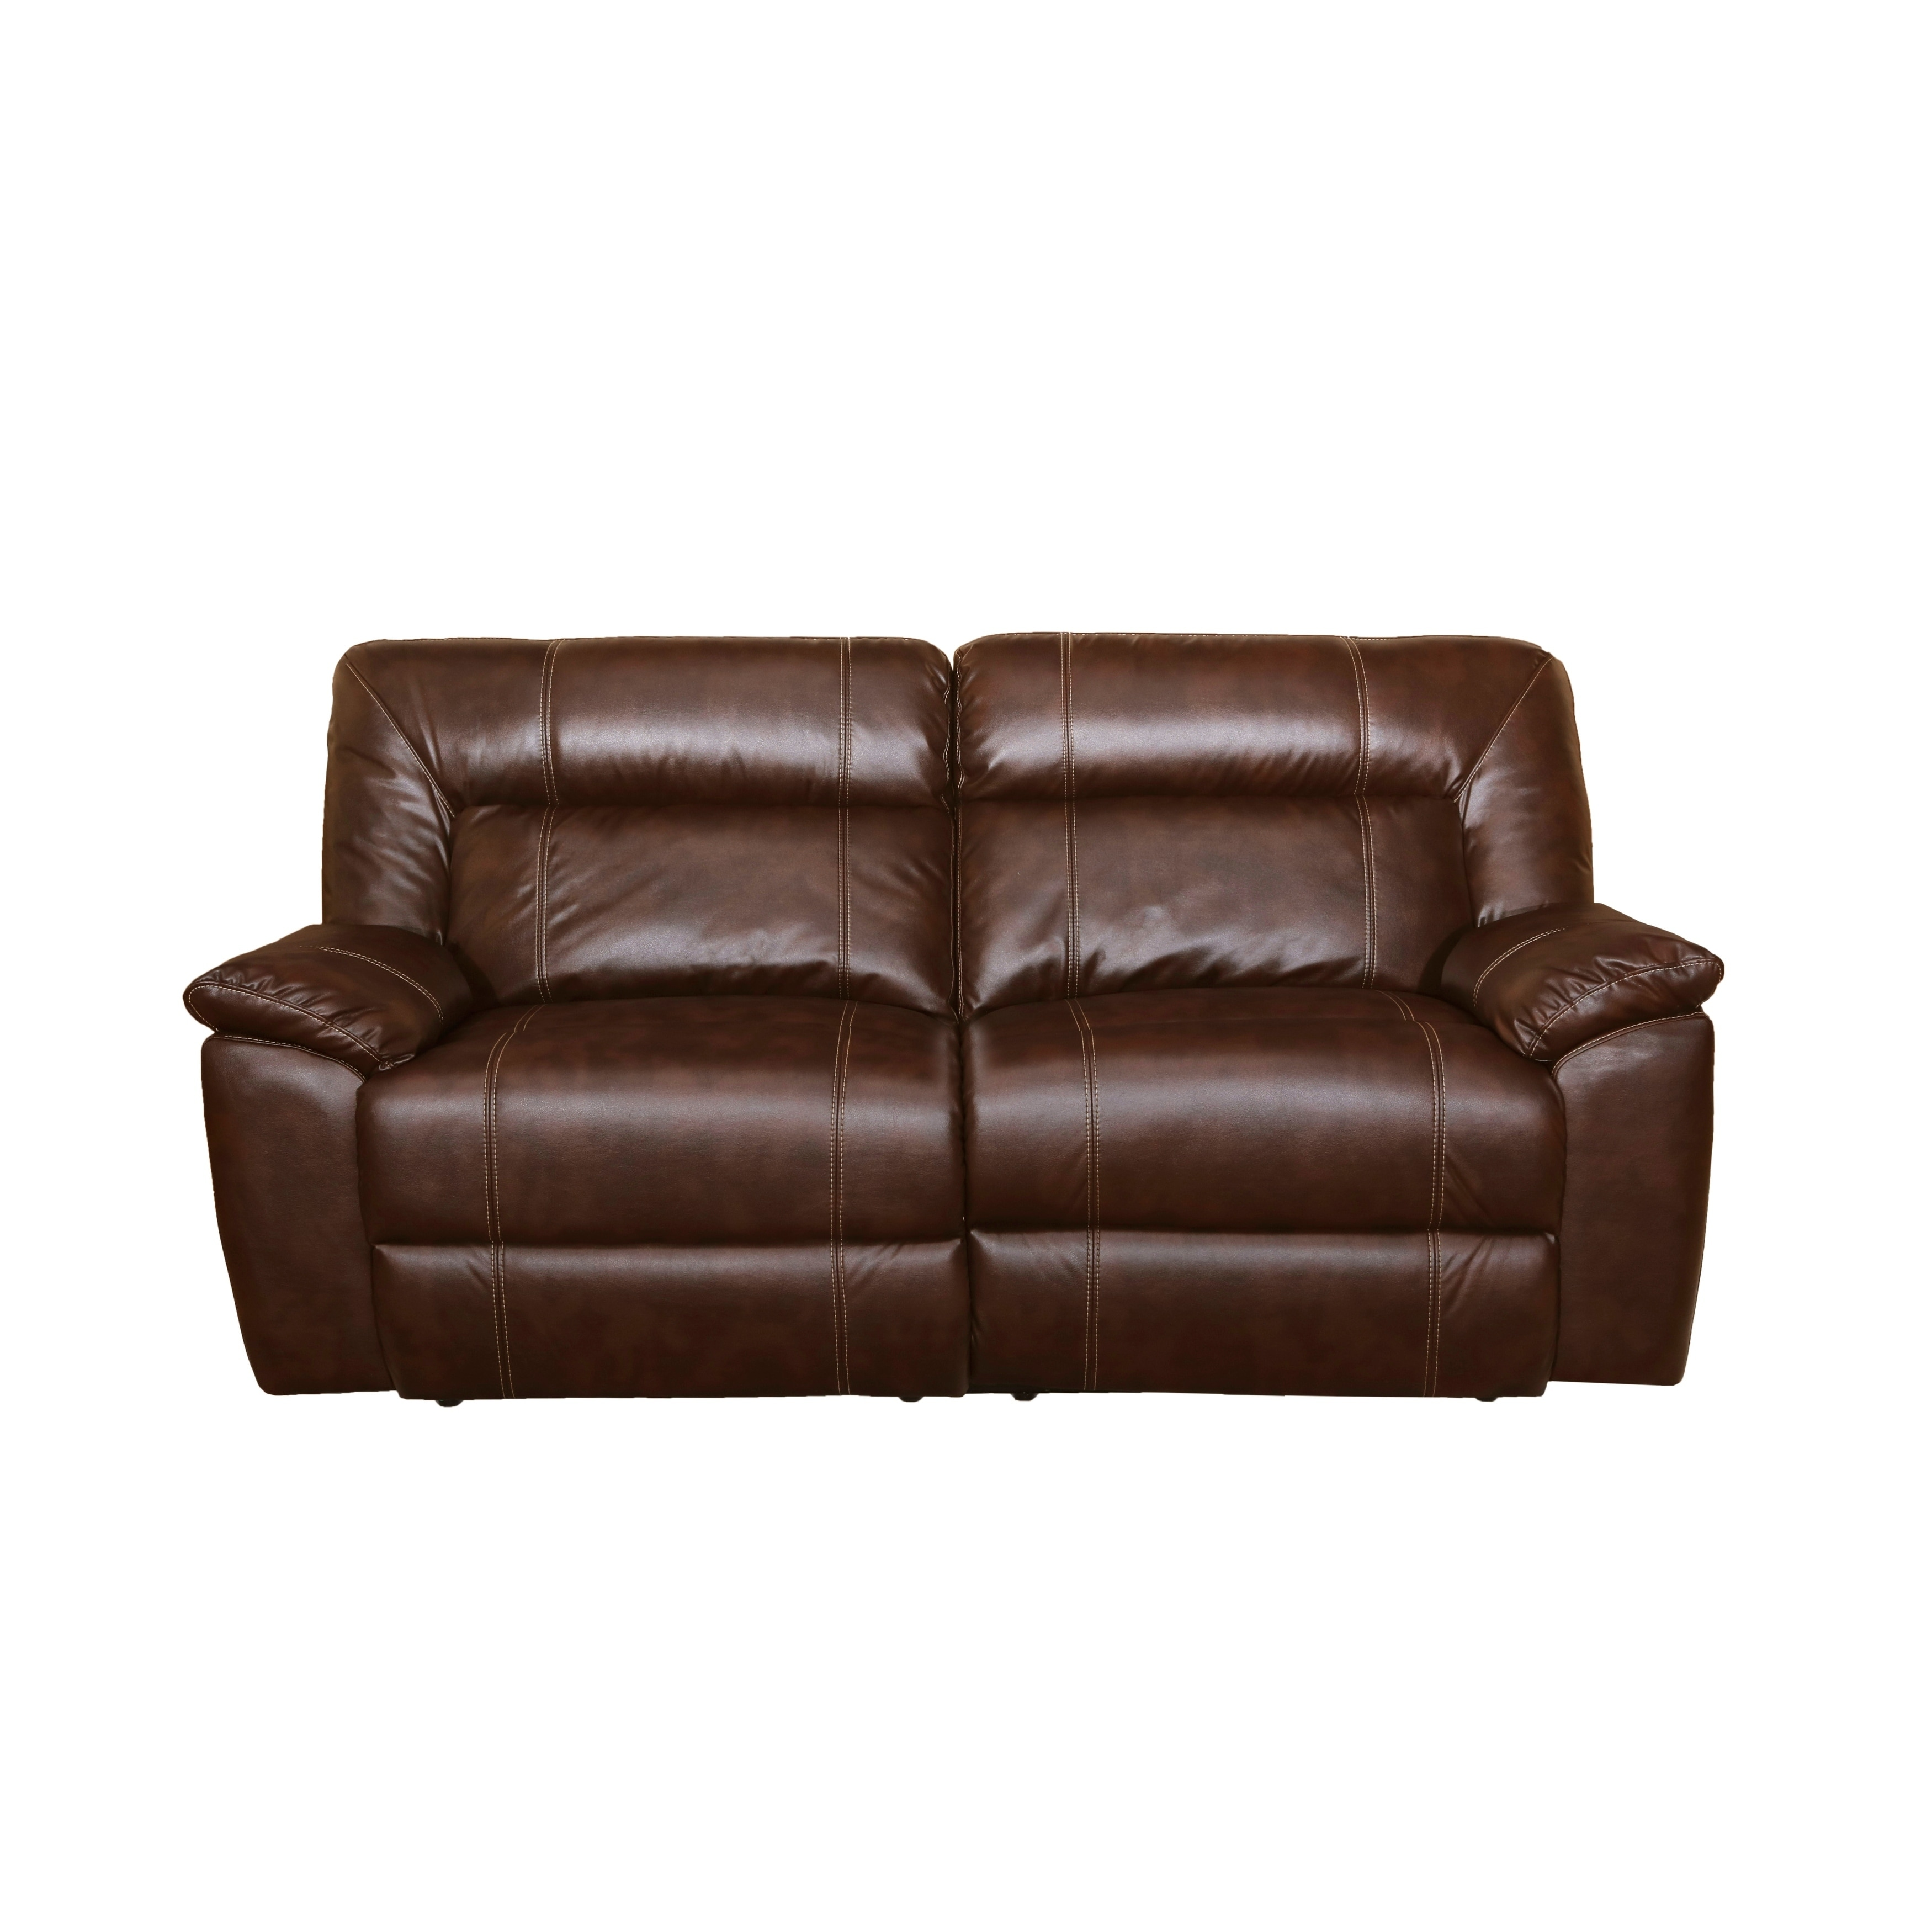 dp loveseat cover com heated supplies amazon thermo for pet furniture h tan k